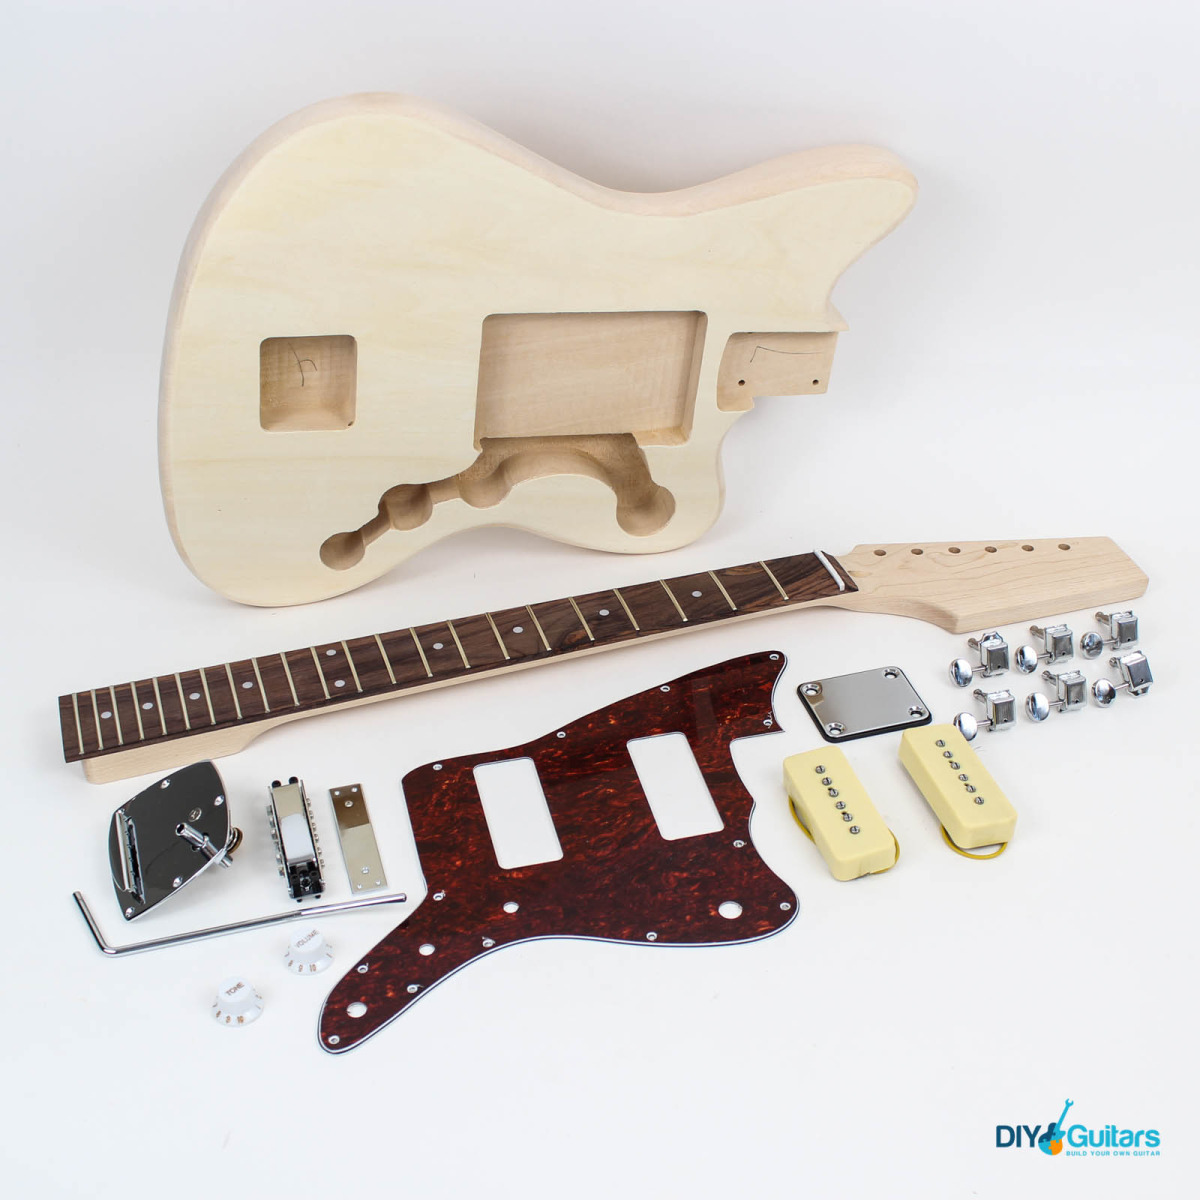 fender-jazzmaster-diy-electric-guitar-kit-1-1200x1200.jpg